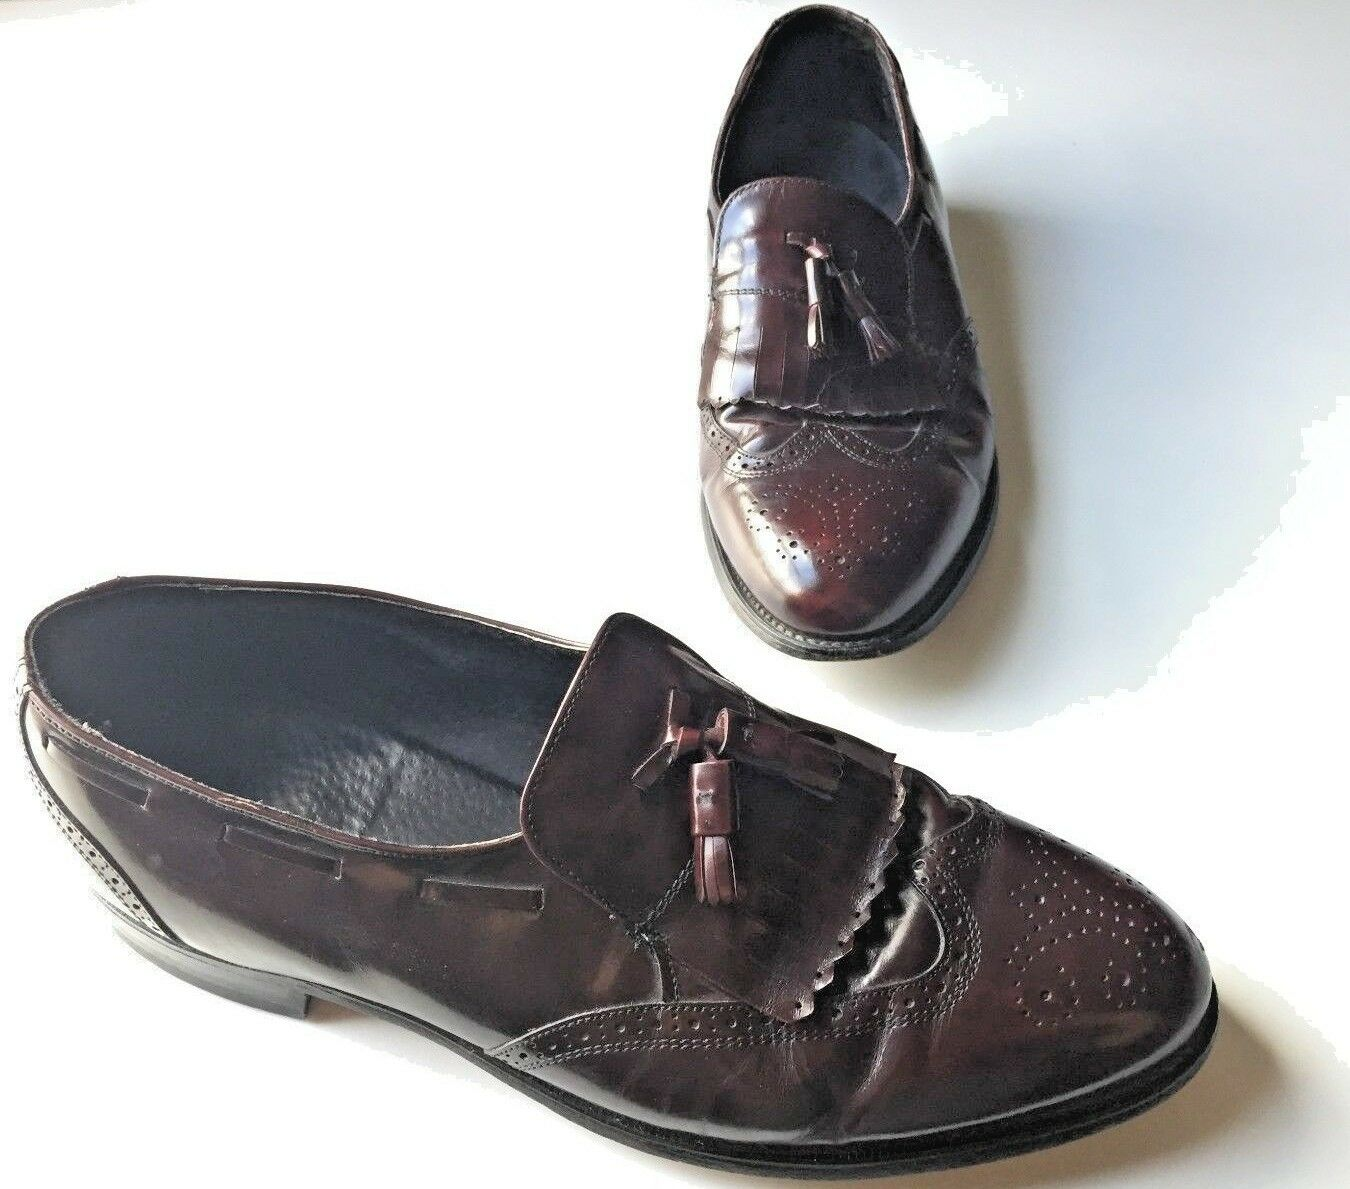 Men's Hanover Leather Brown Oxford Tassel Loafers. Size: 13 D/B. Tassel Oxford Details. 8cf14e